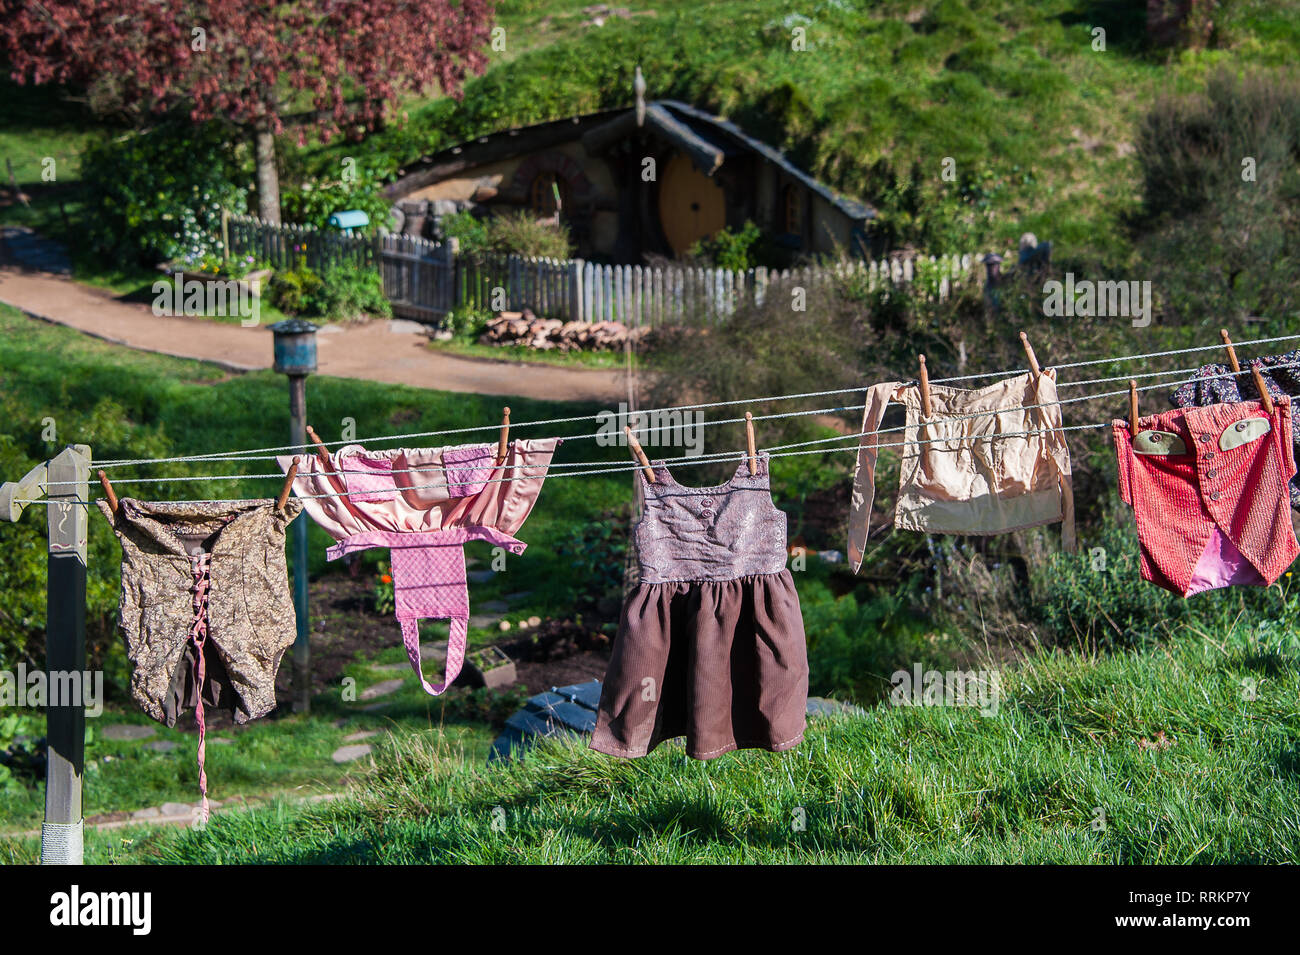 Hobbiton movie set created to film Lord of the Rings and The Hobbit. Washing hanging in the sun on a wooden clothes line in lush green grass - Stock Image